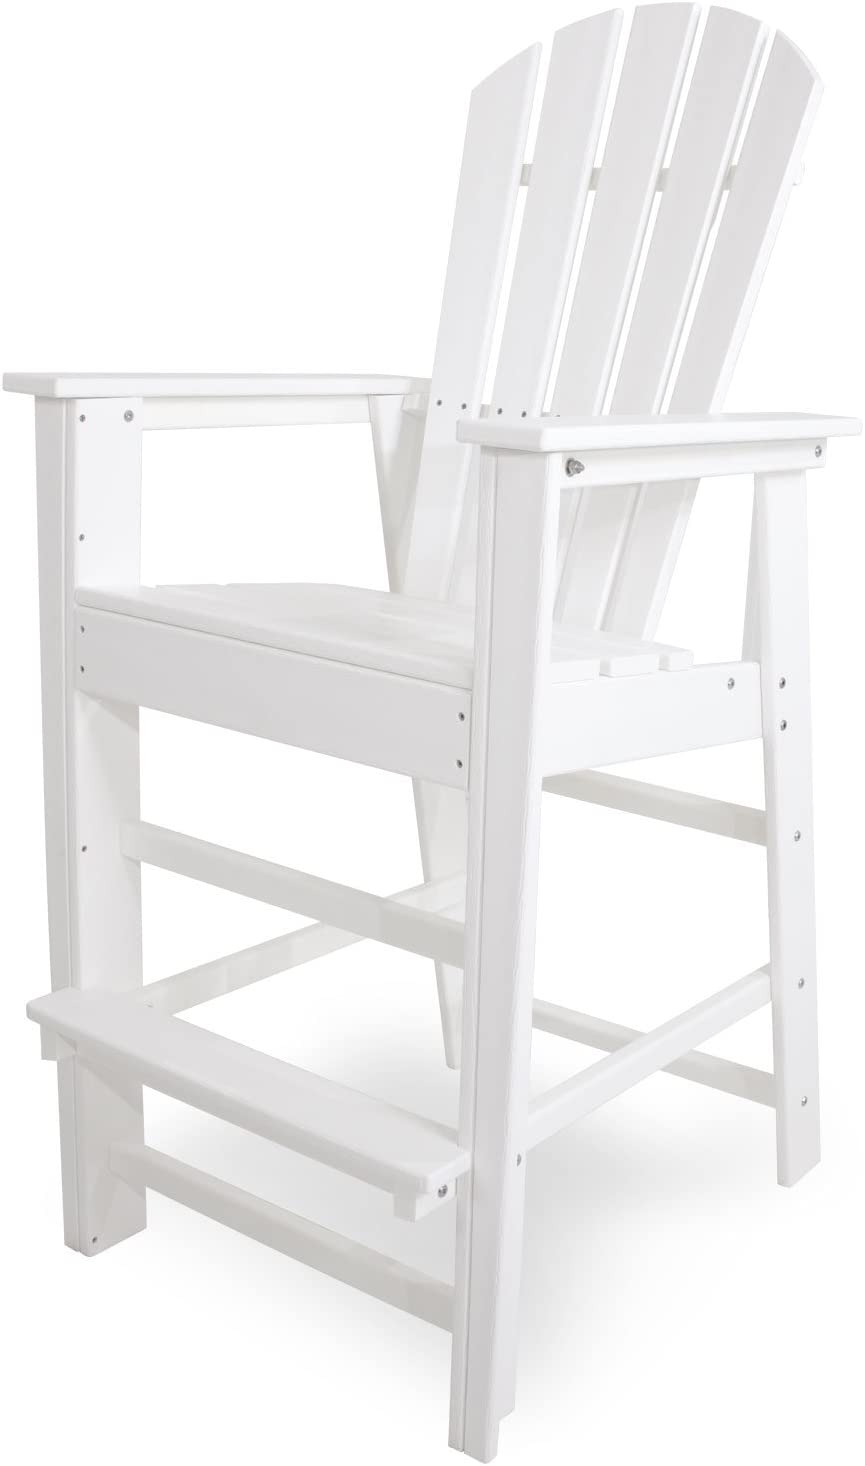 B003GW2HT6 POLYWOOD SBD30WH South Beach Bar Chair, White 51kPkPS0QXL